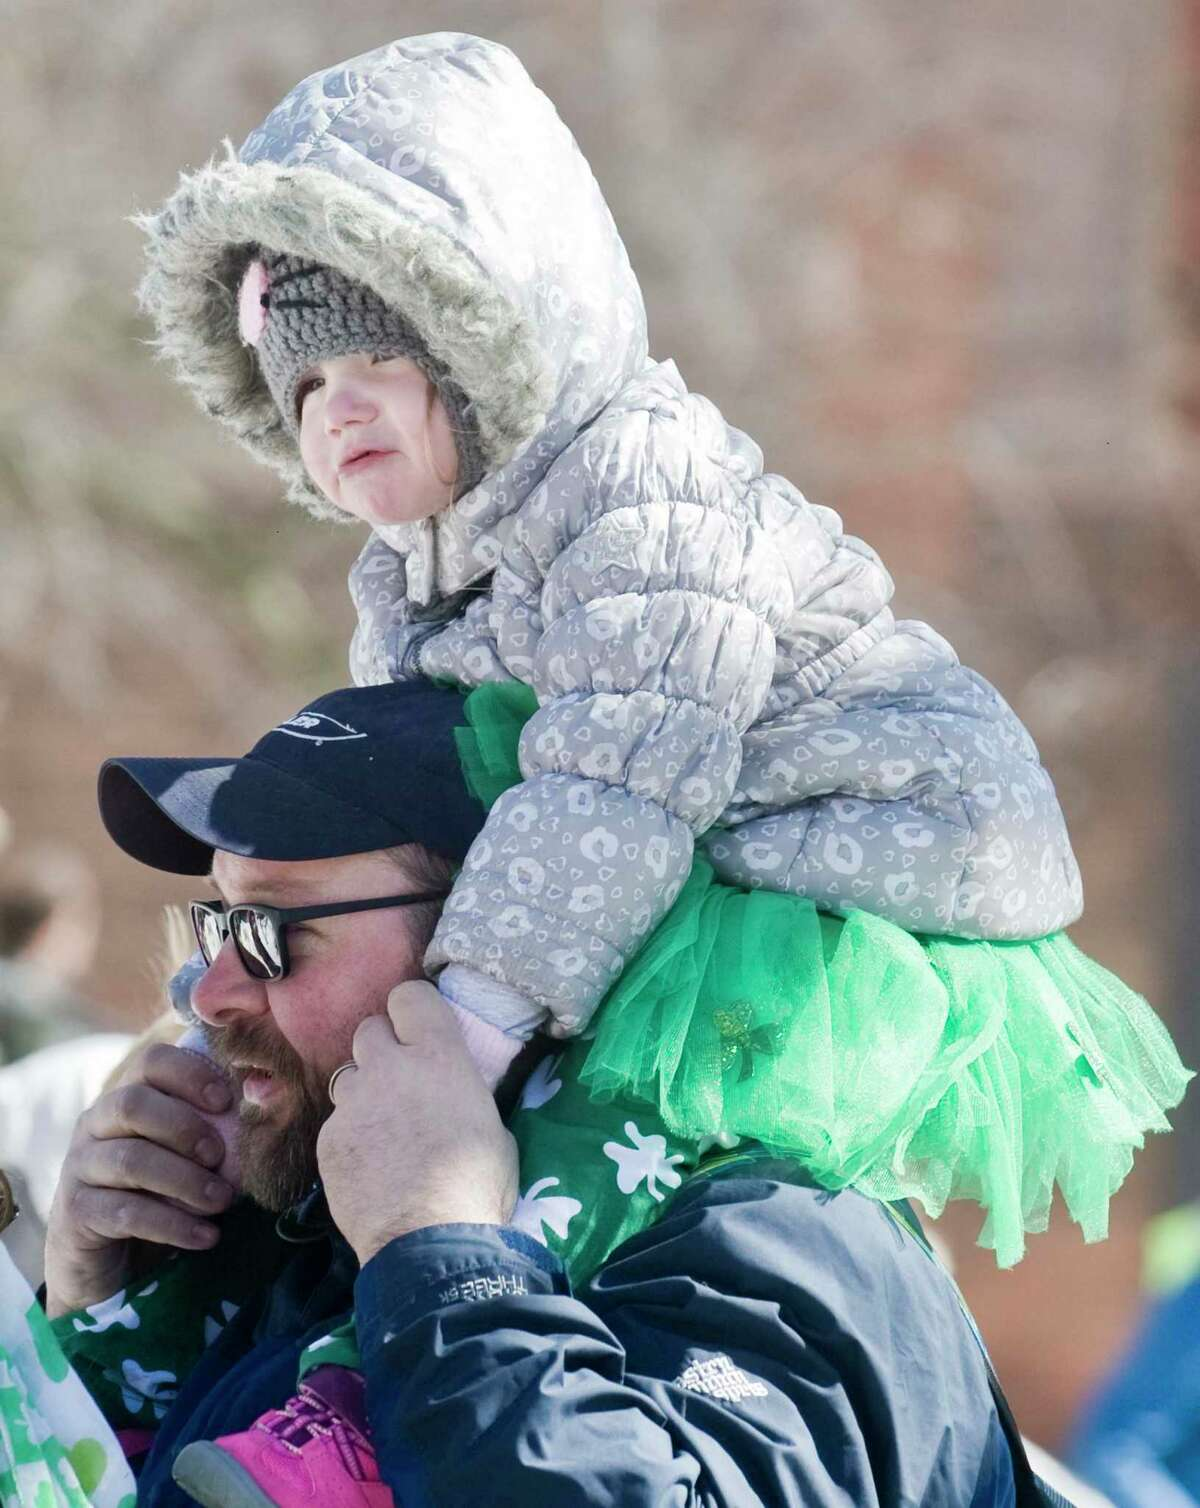 Brett Lynas, of New Fairfield, watching the marching groups with his daughter Madigan, 2, at the Greater Danbury Irish Cultural Center's St. Patrick's Day parade on Main Street in Danbury. Sunday, March 19, 2017